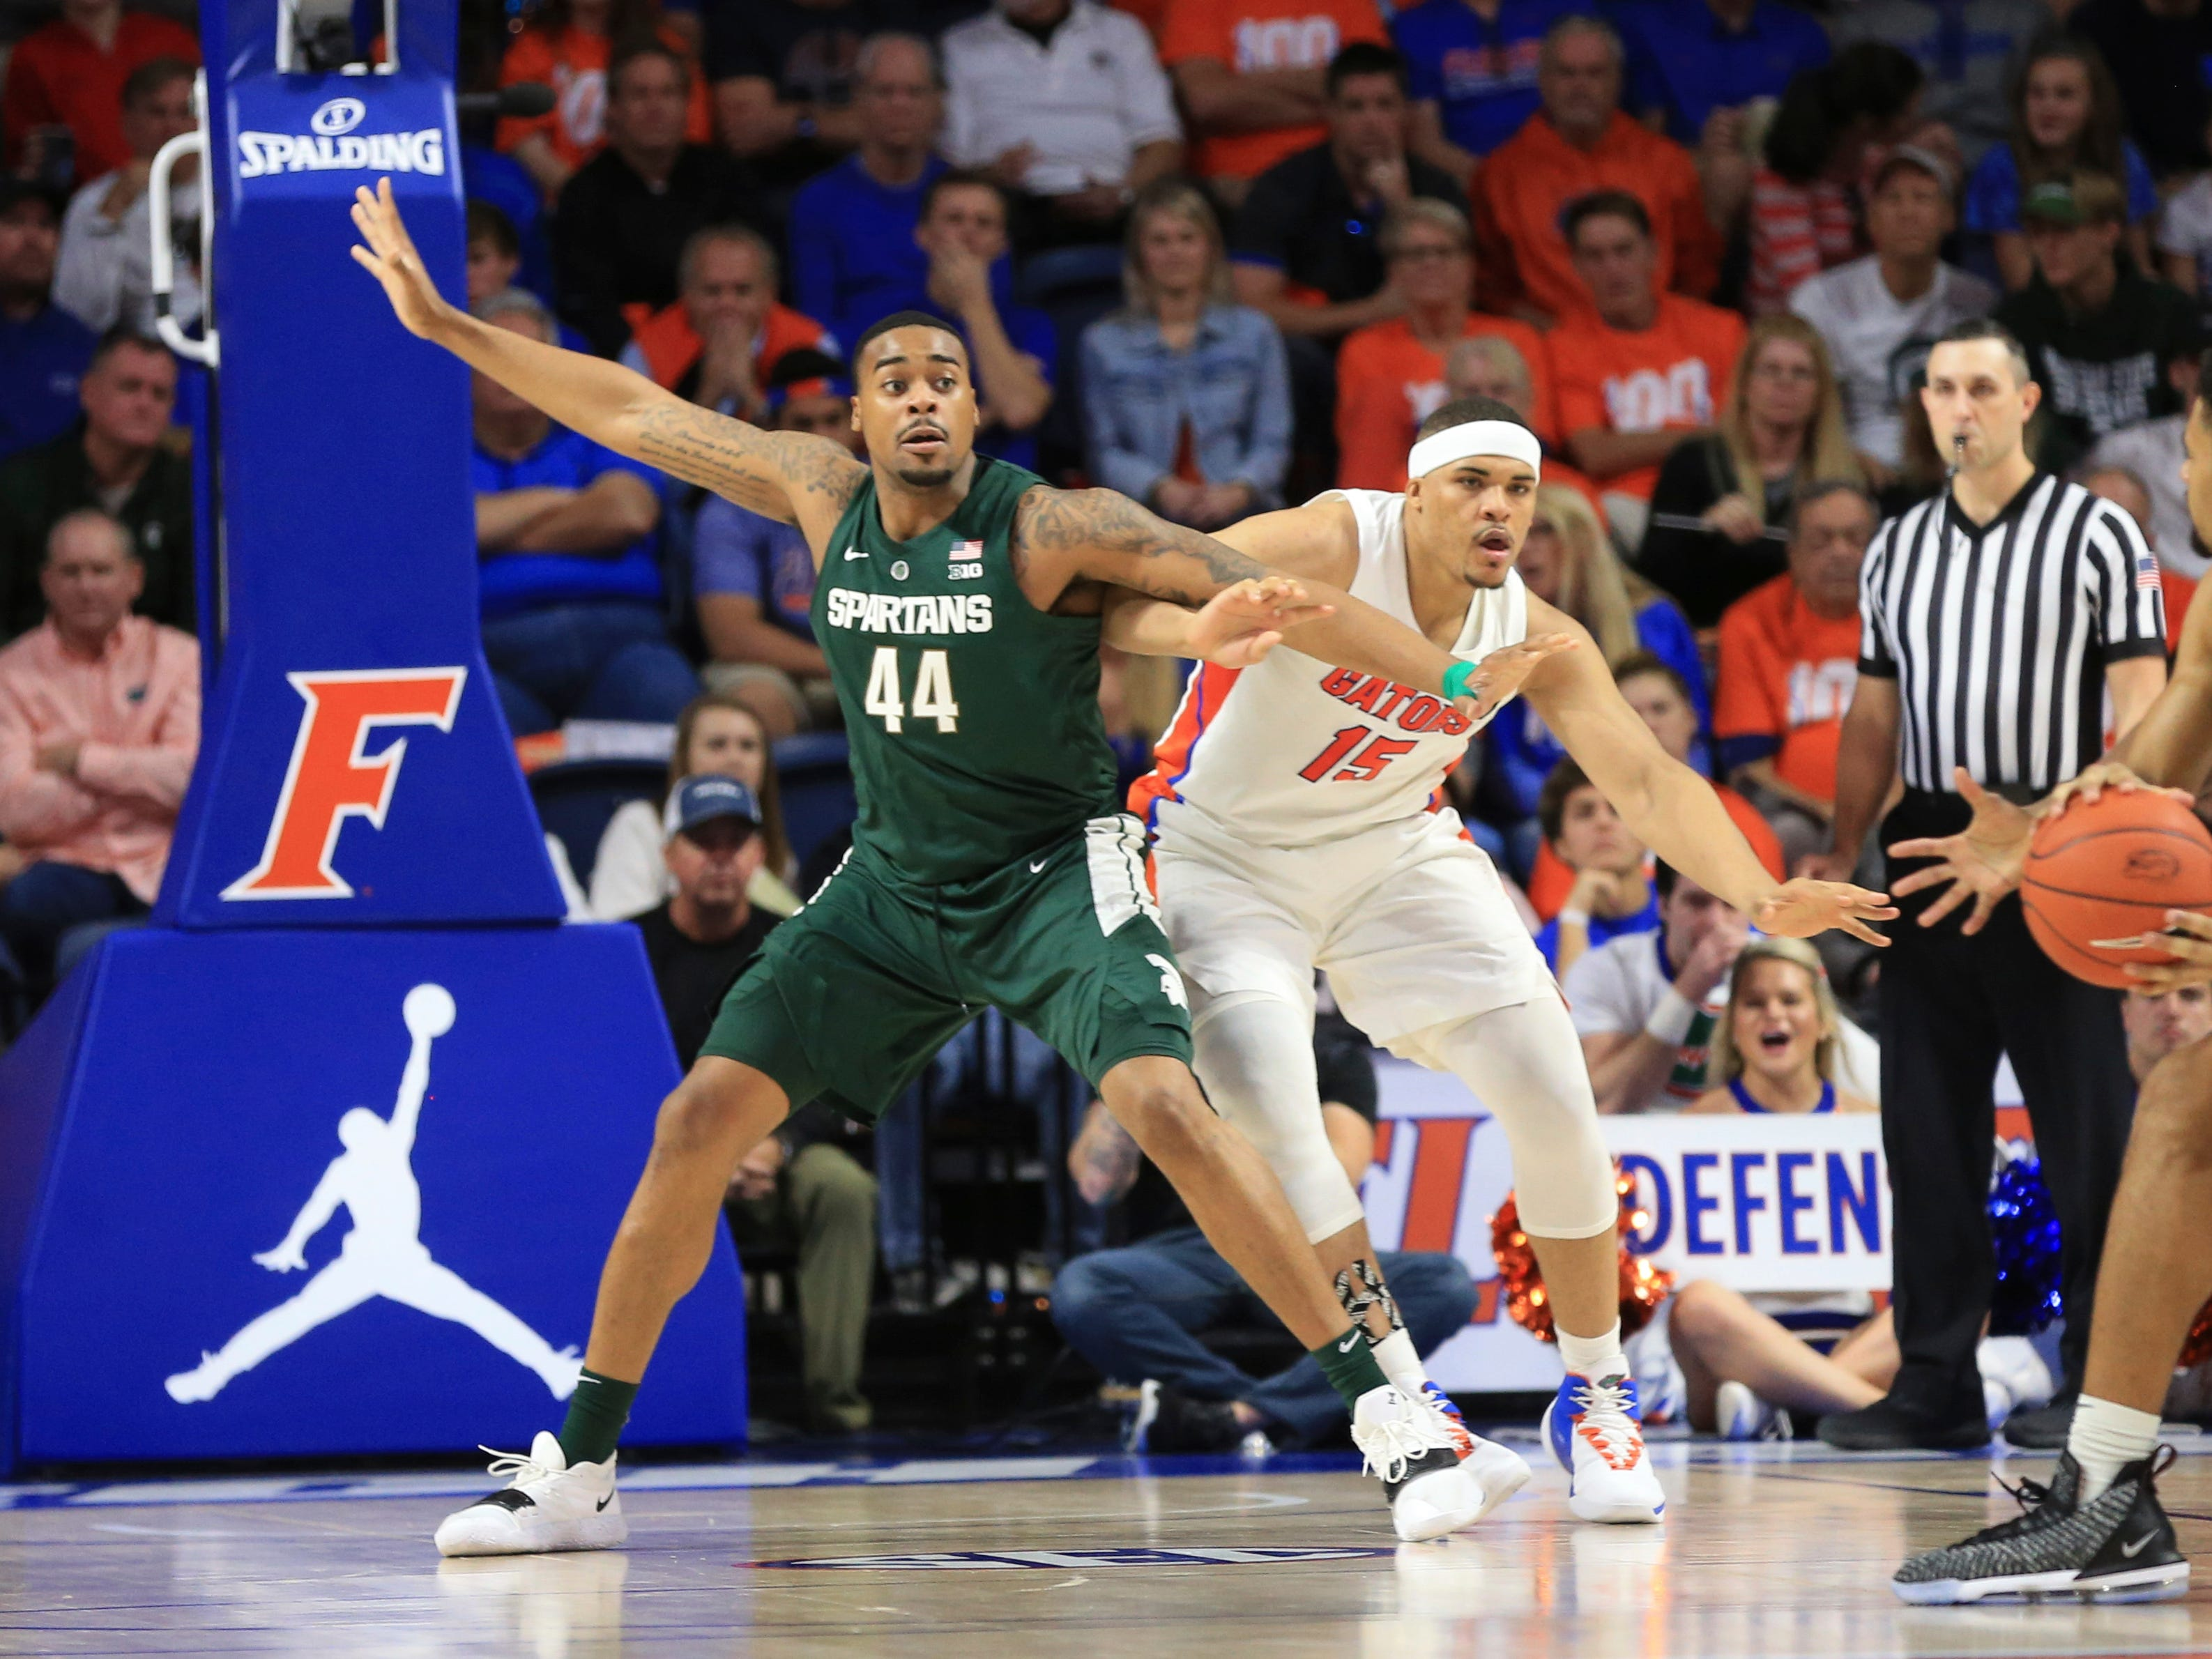 Michigan State forward Nick Ward (44) posts up on Florida forward Isaiah Stokes (15) during the second half of an NCAA college basketball game Saturday, Dec. 8, 2018, in Gainesville, Fla. Michigan State defeated Florida 63-59.